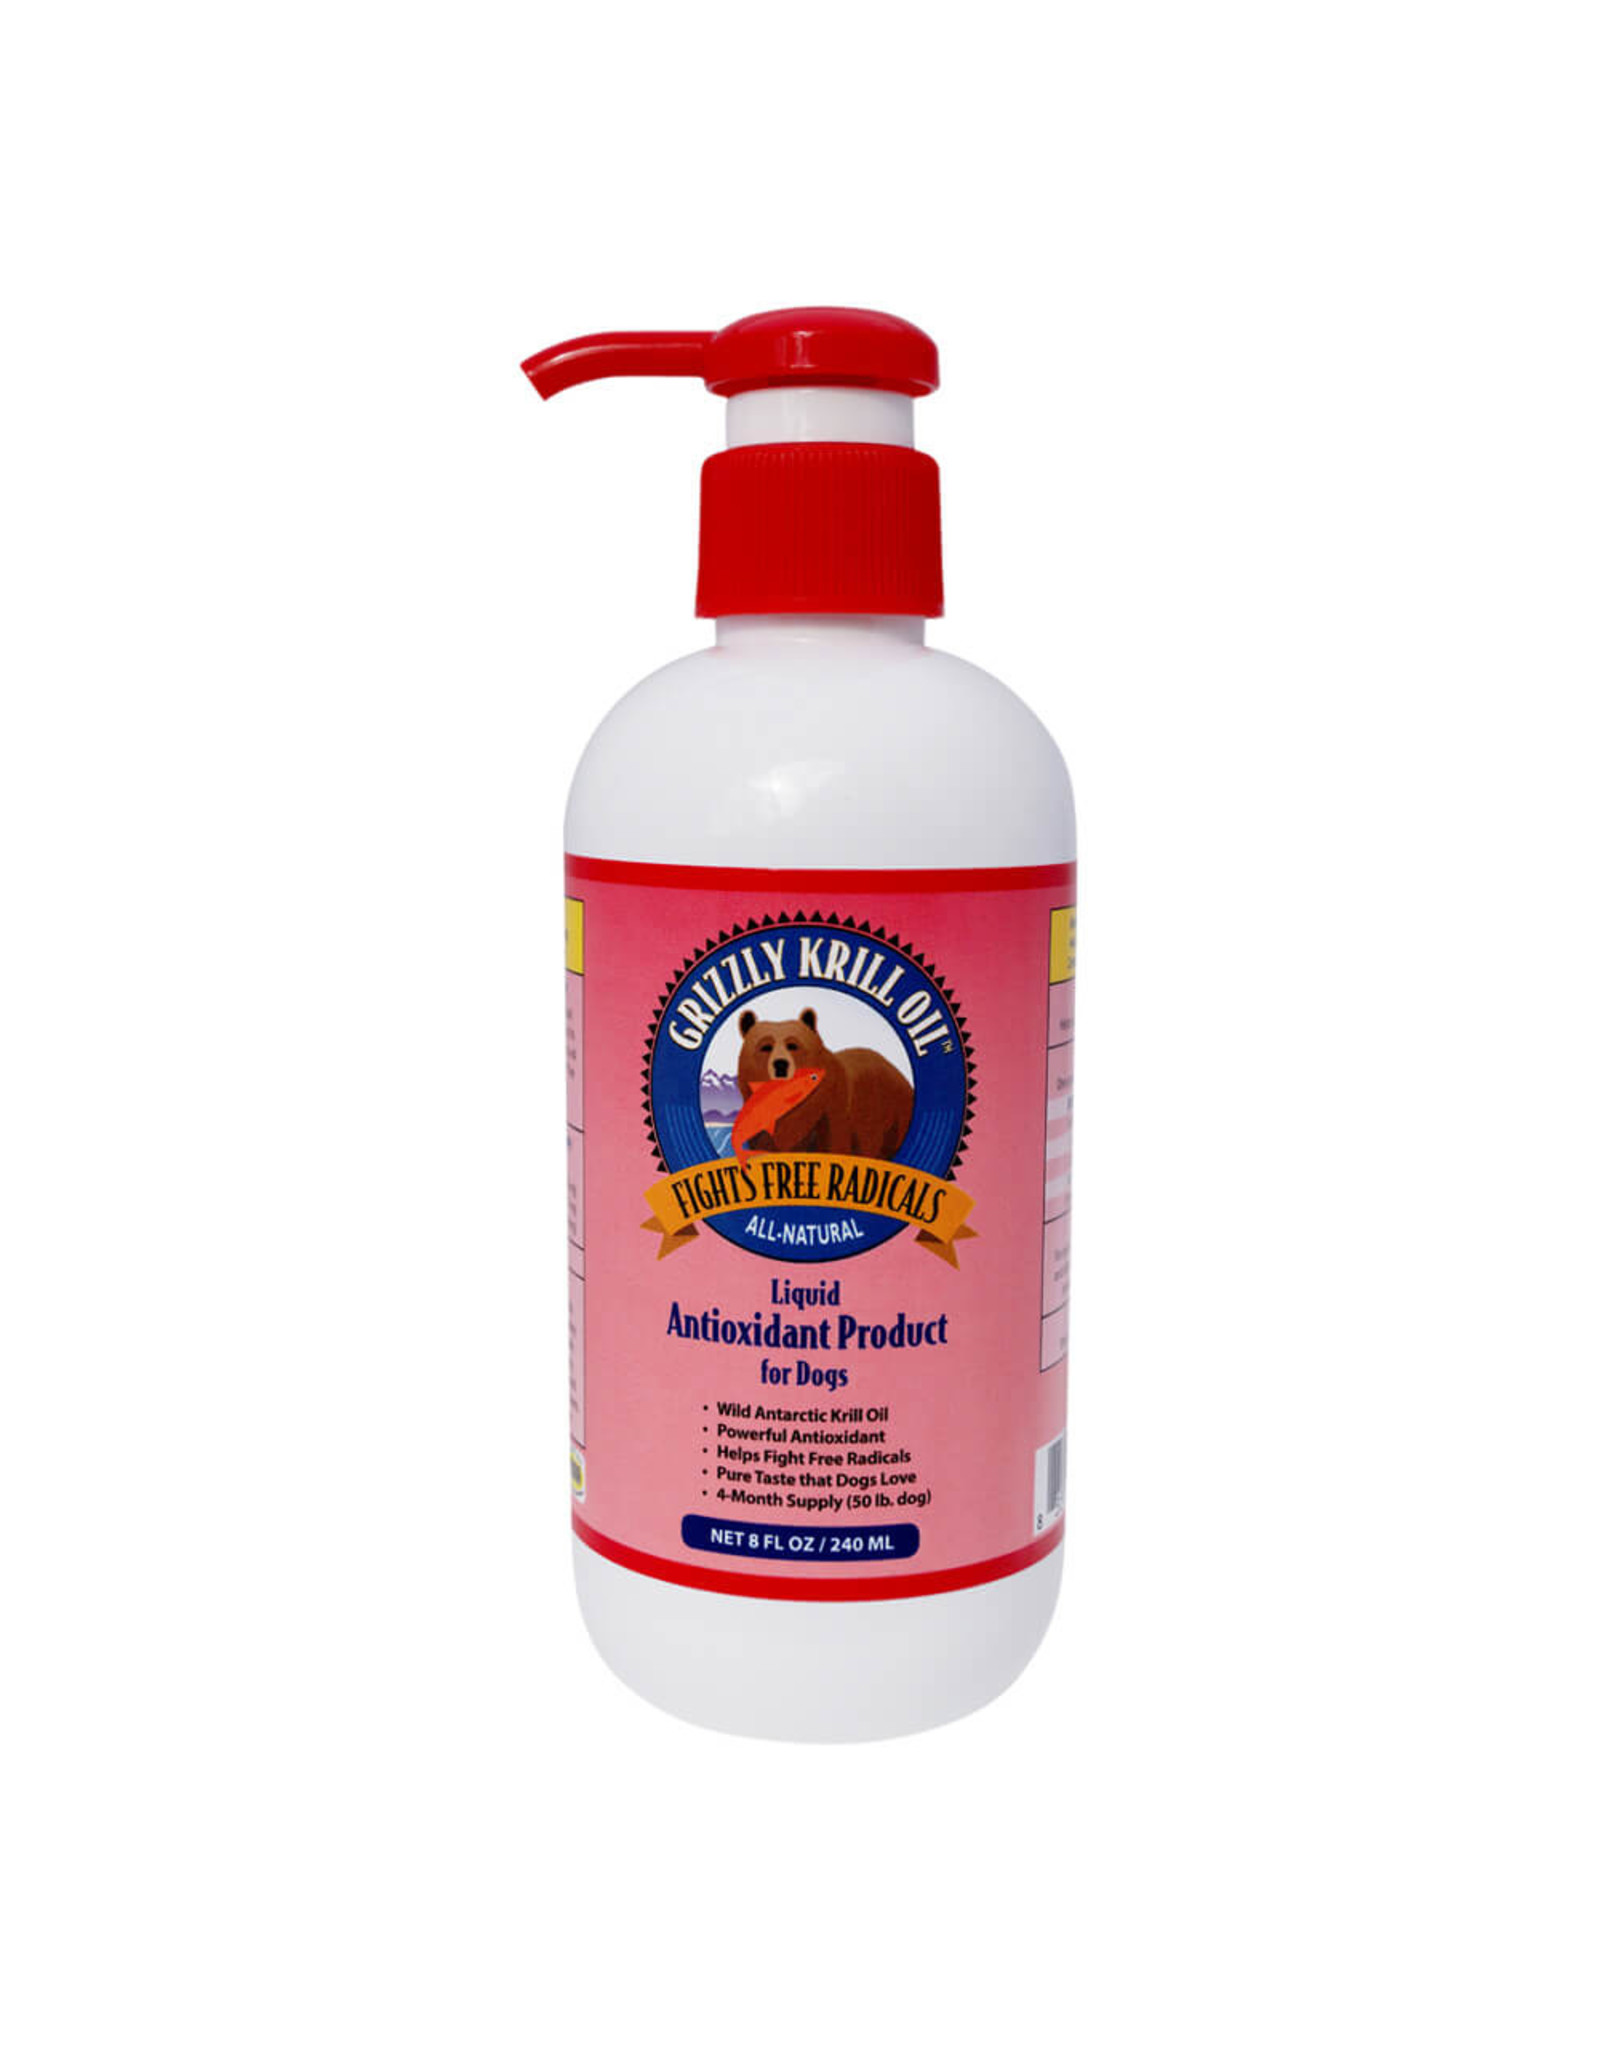 Grizzly Grizzly Pet Products Wild Alaskan Salmon Oil Dog Food Supplement 8oz Liquid Antioxidant